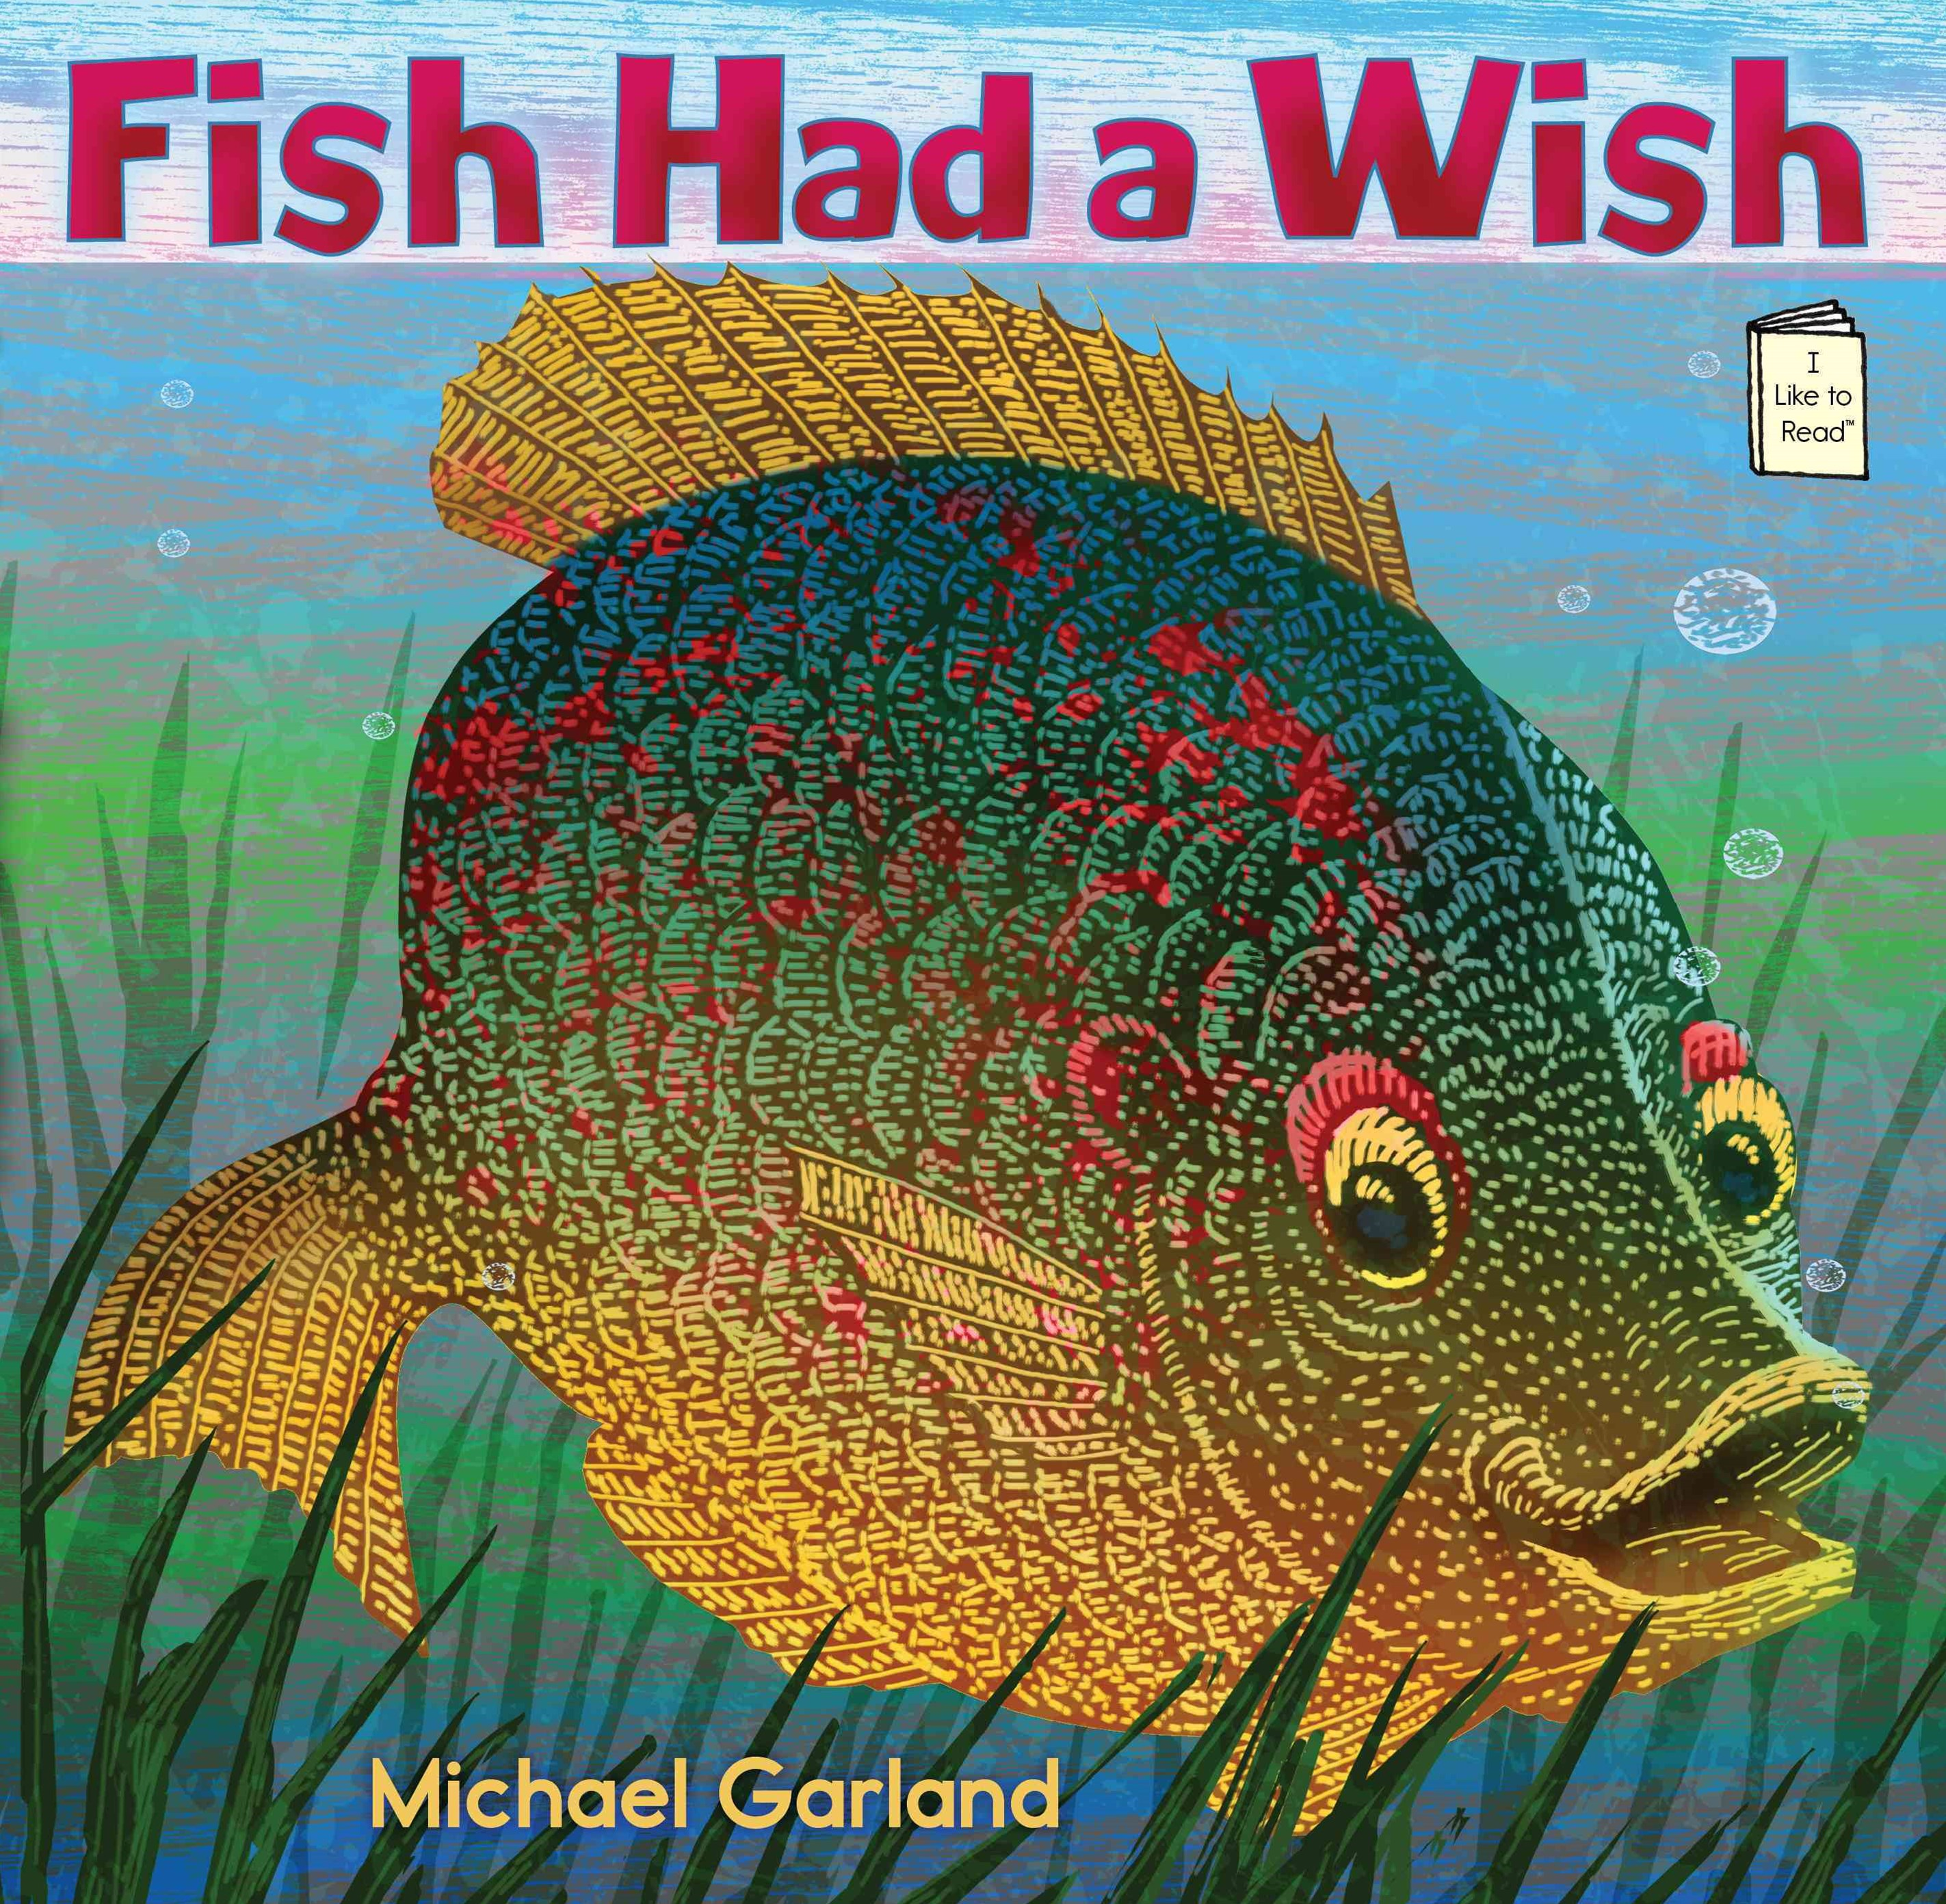 Fish Had a Wish